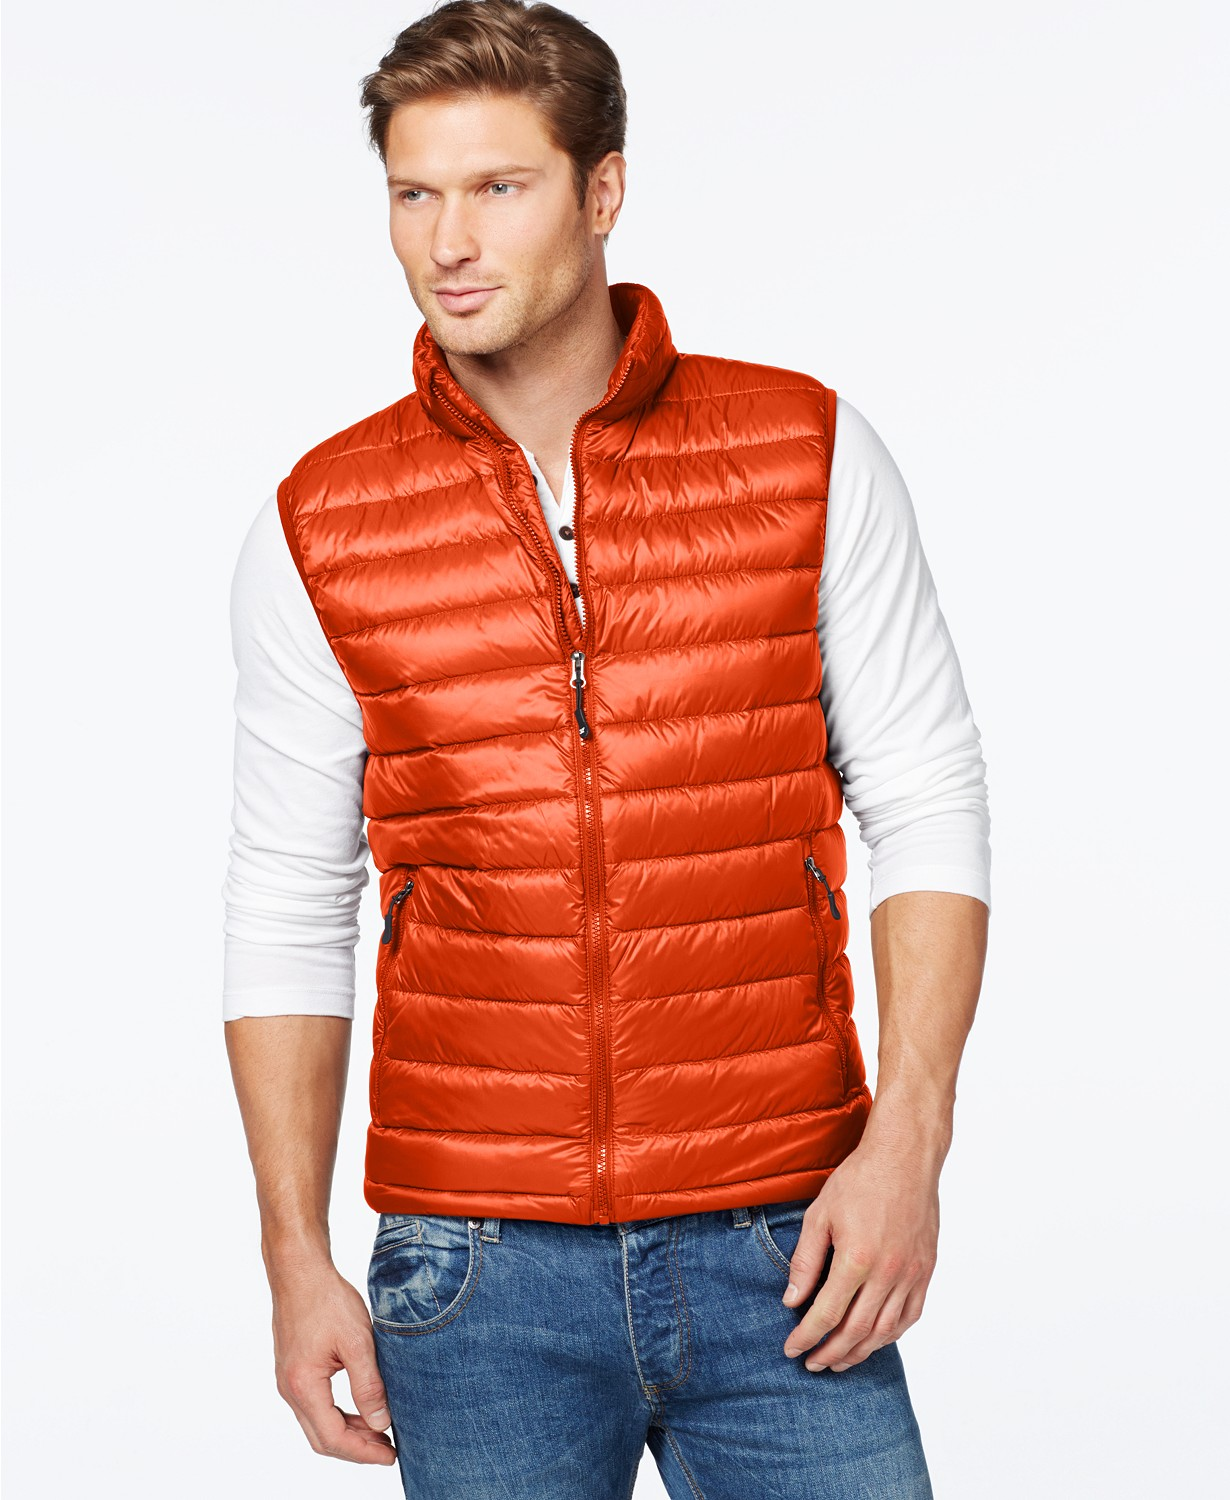 32 Degrees Mens Packable Down Vest Deals